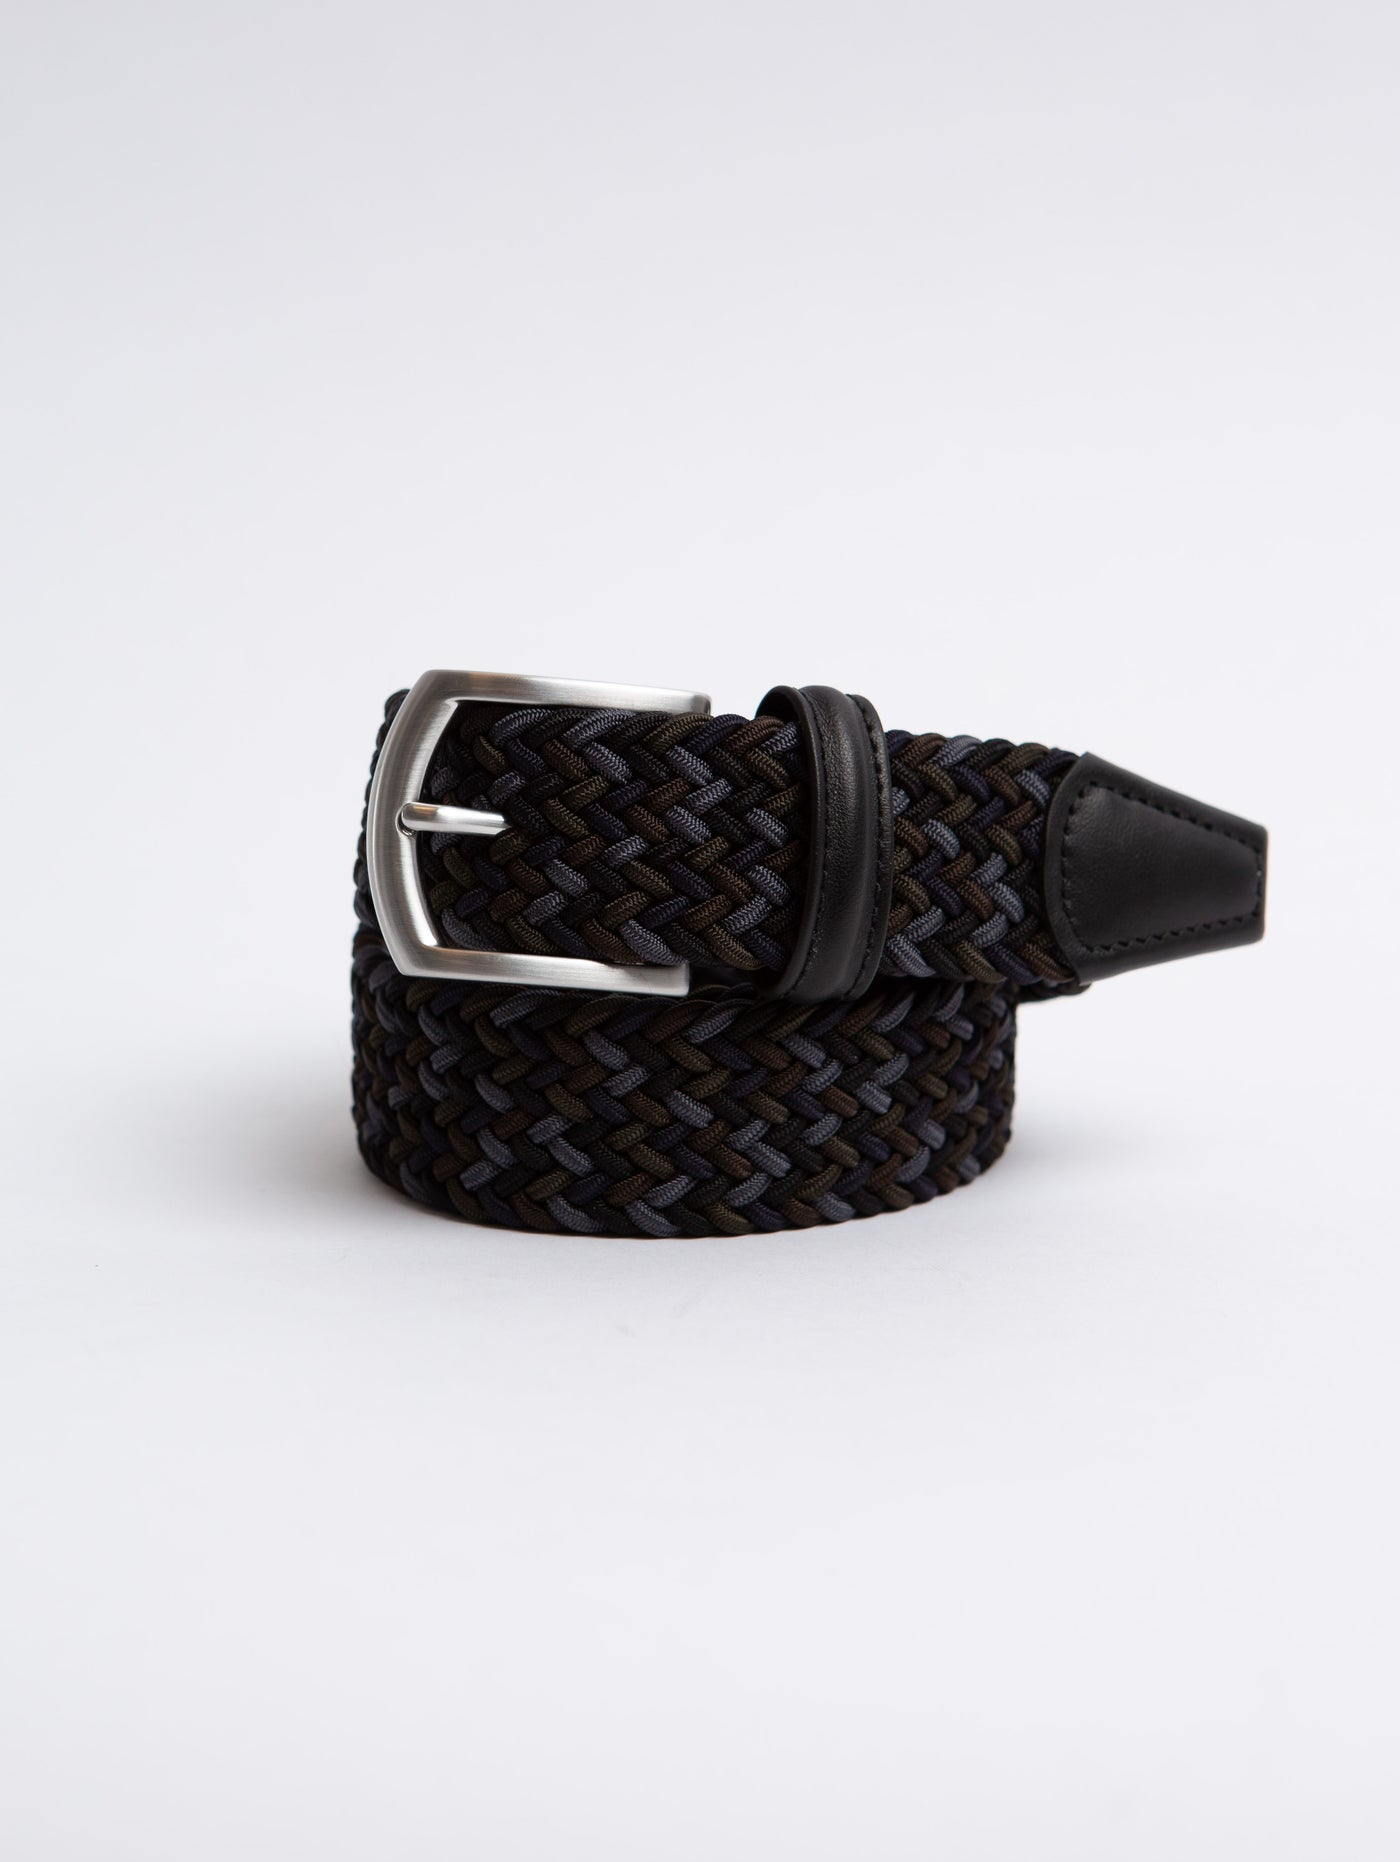 Stretch Woven Belt - Navy Multi-Anderson's-Over the Rainbow